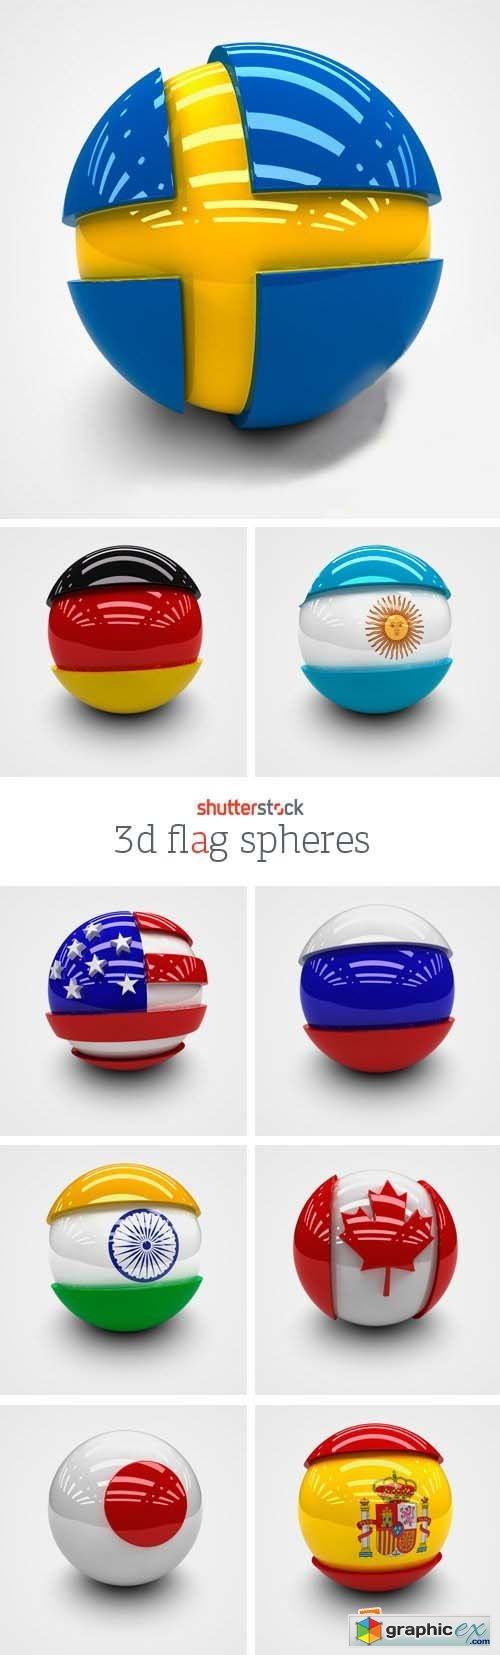 Amazing SS - 3D Flag Spheres, 25xJPGs